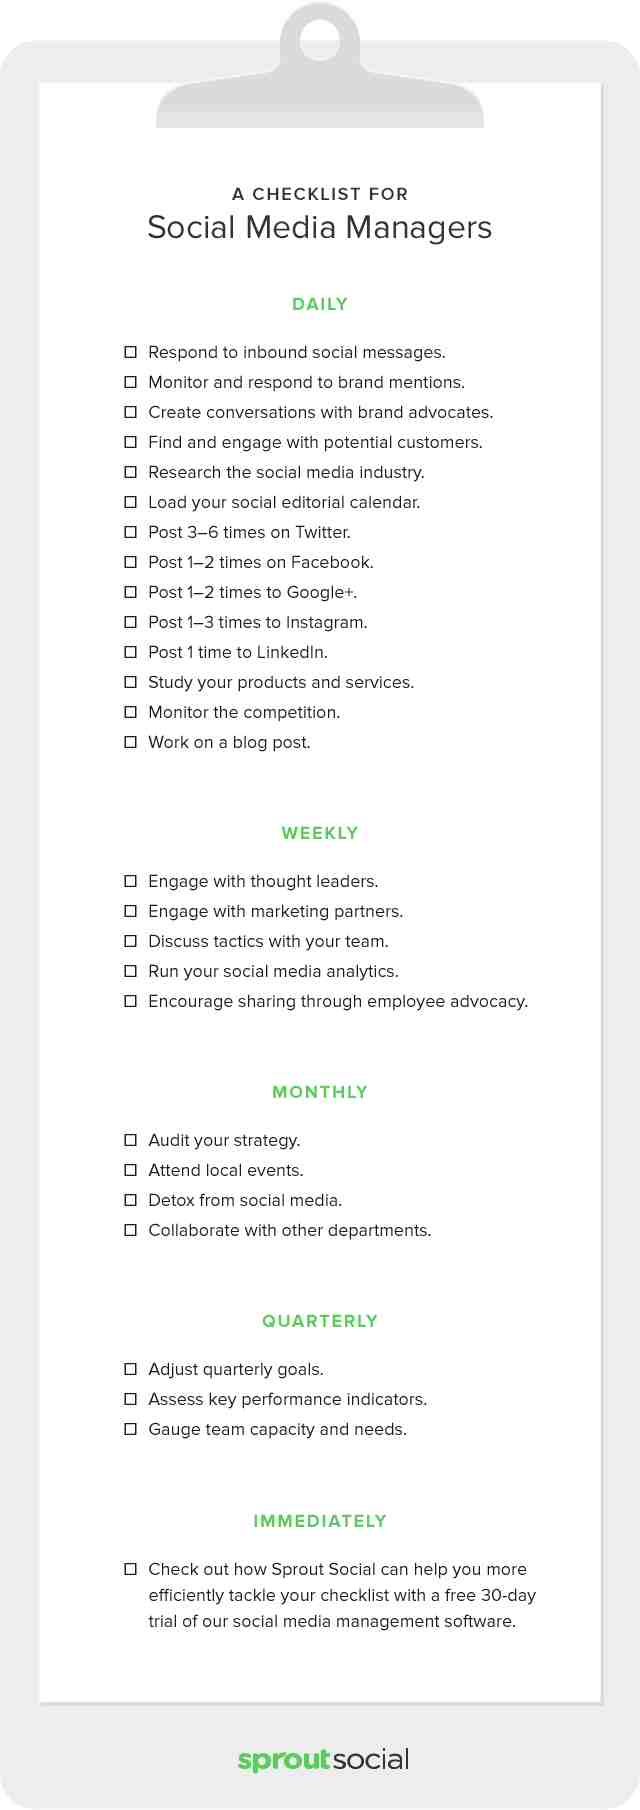 70 useful inbound marketing checklists and cheat sheets social media marketing cheat sheets checklists and advanced guides malvernweather Gallery